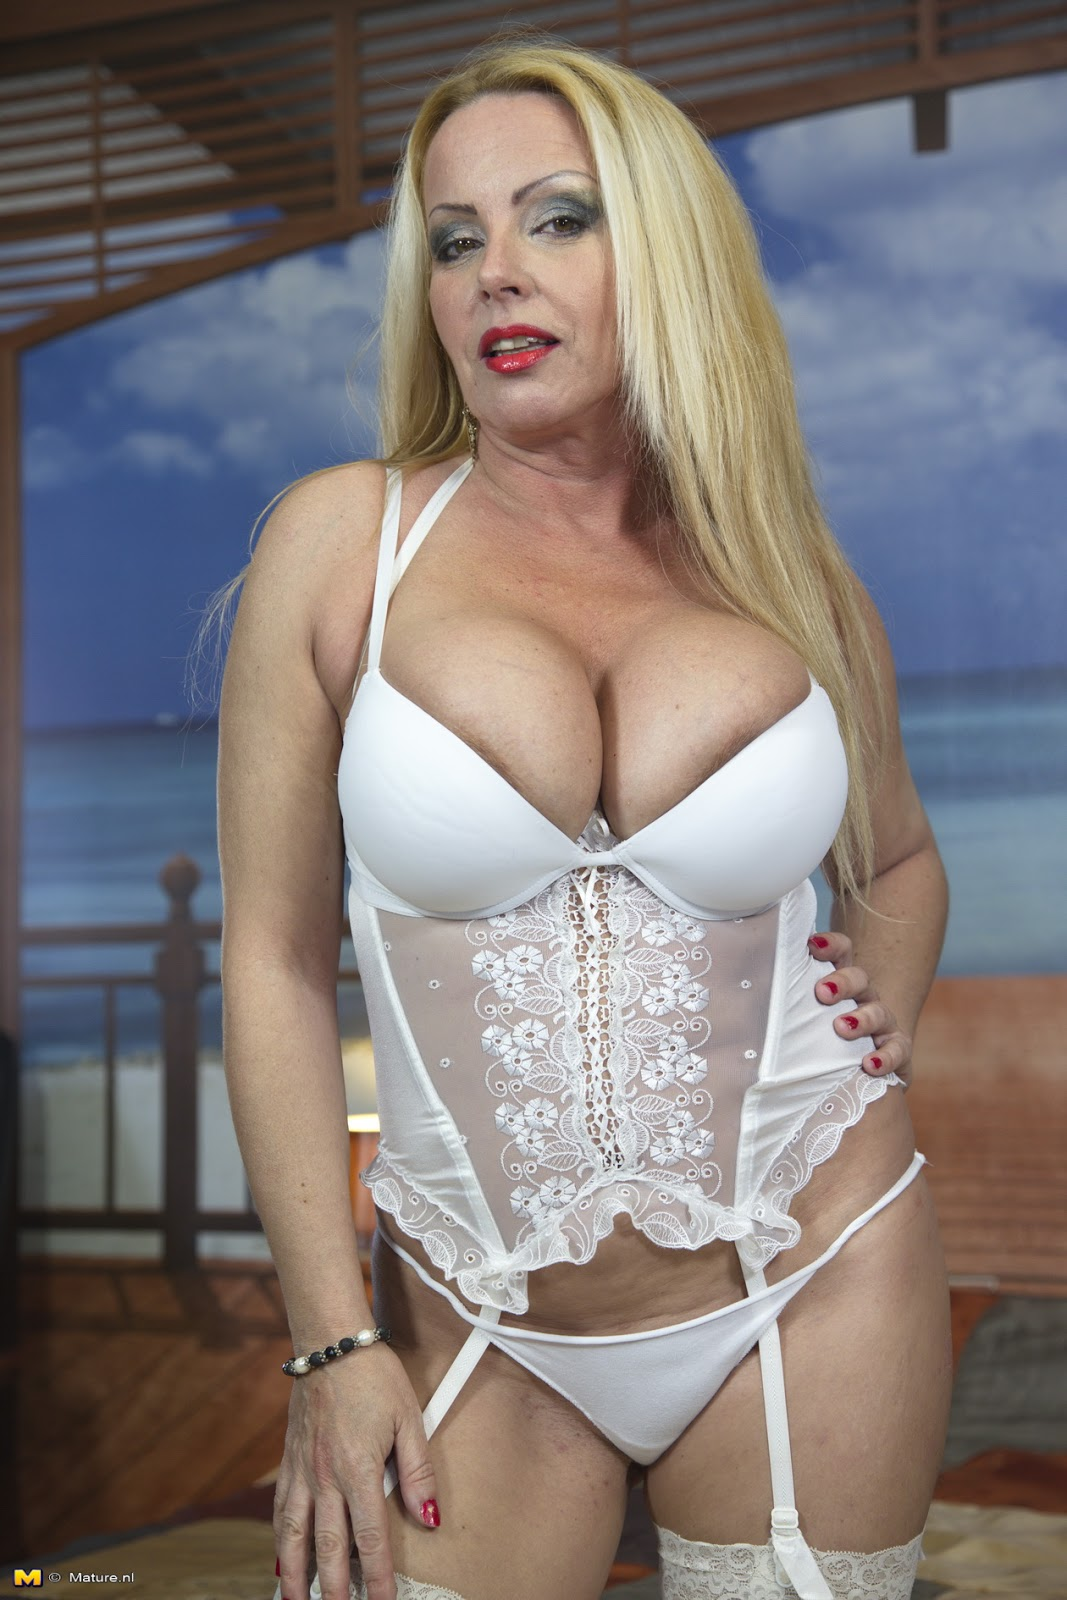 archive of old women Constanza Blonde With Big Breasted